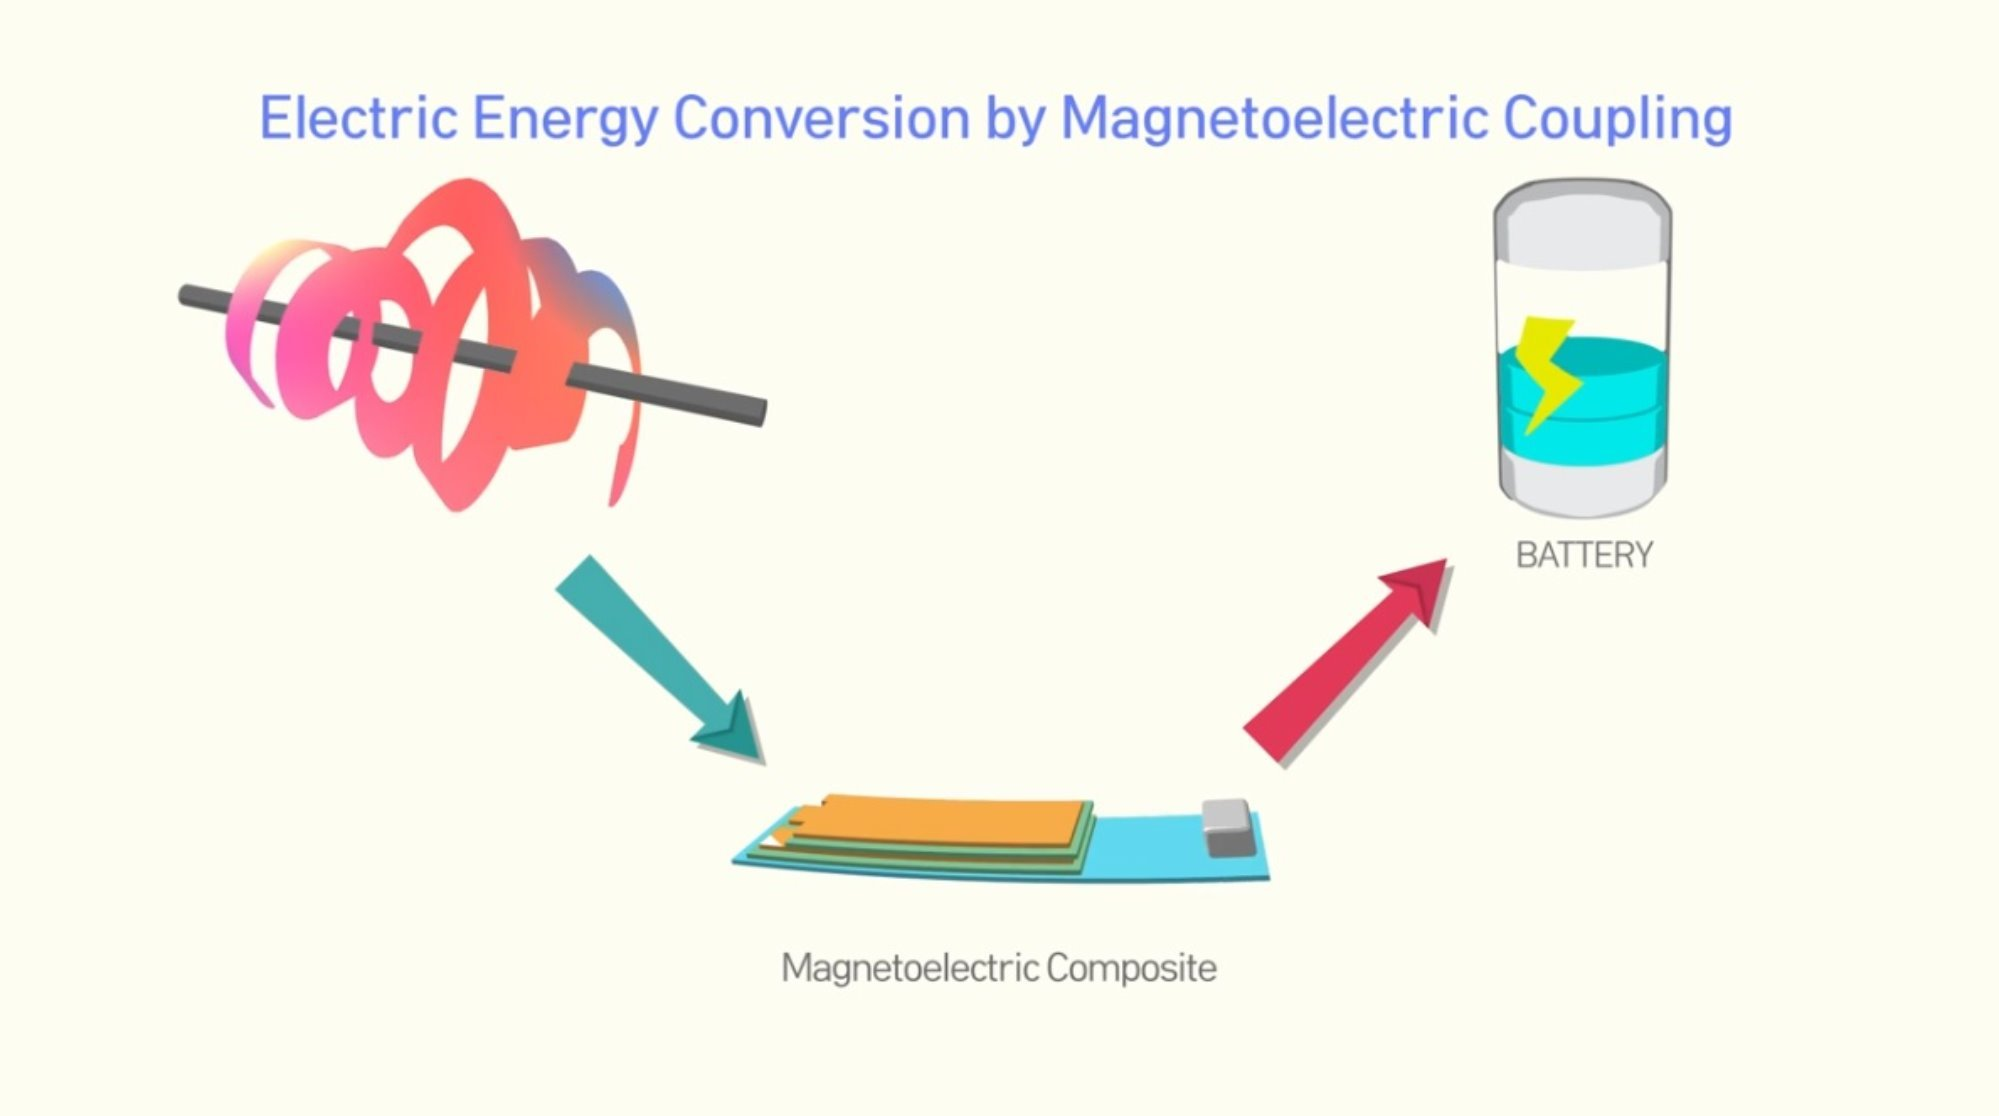 [테크블랙홀] Magnetic Energy Harvester with Magnetoelectric Composite_재료연구소(KIMS)